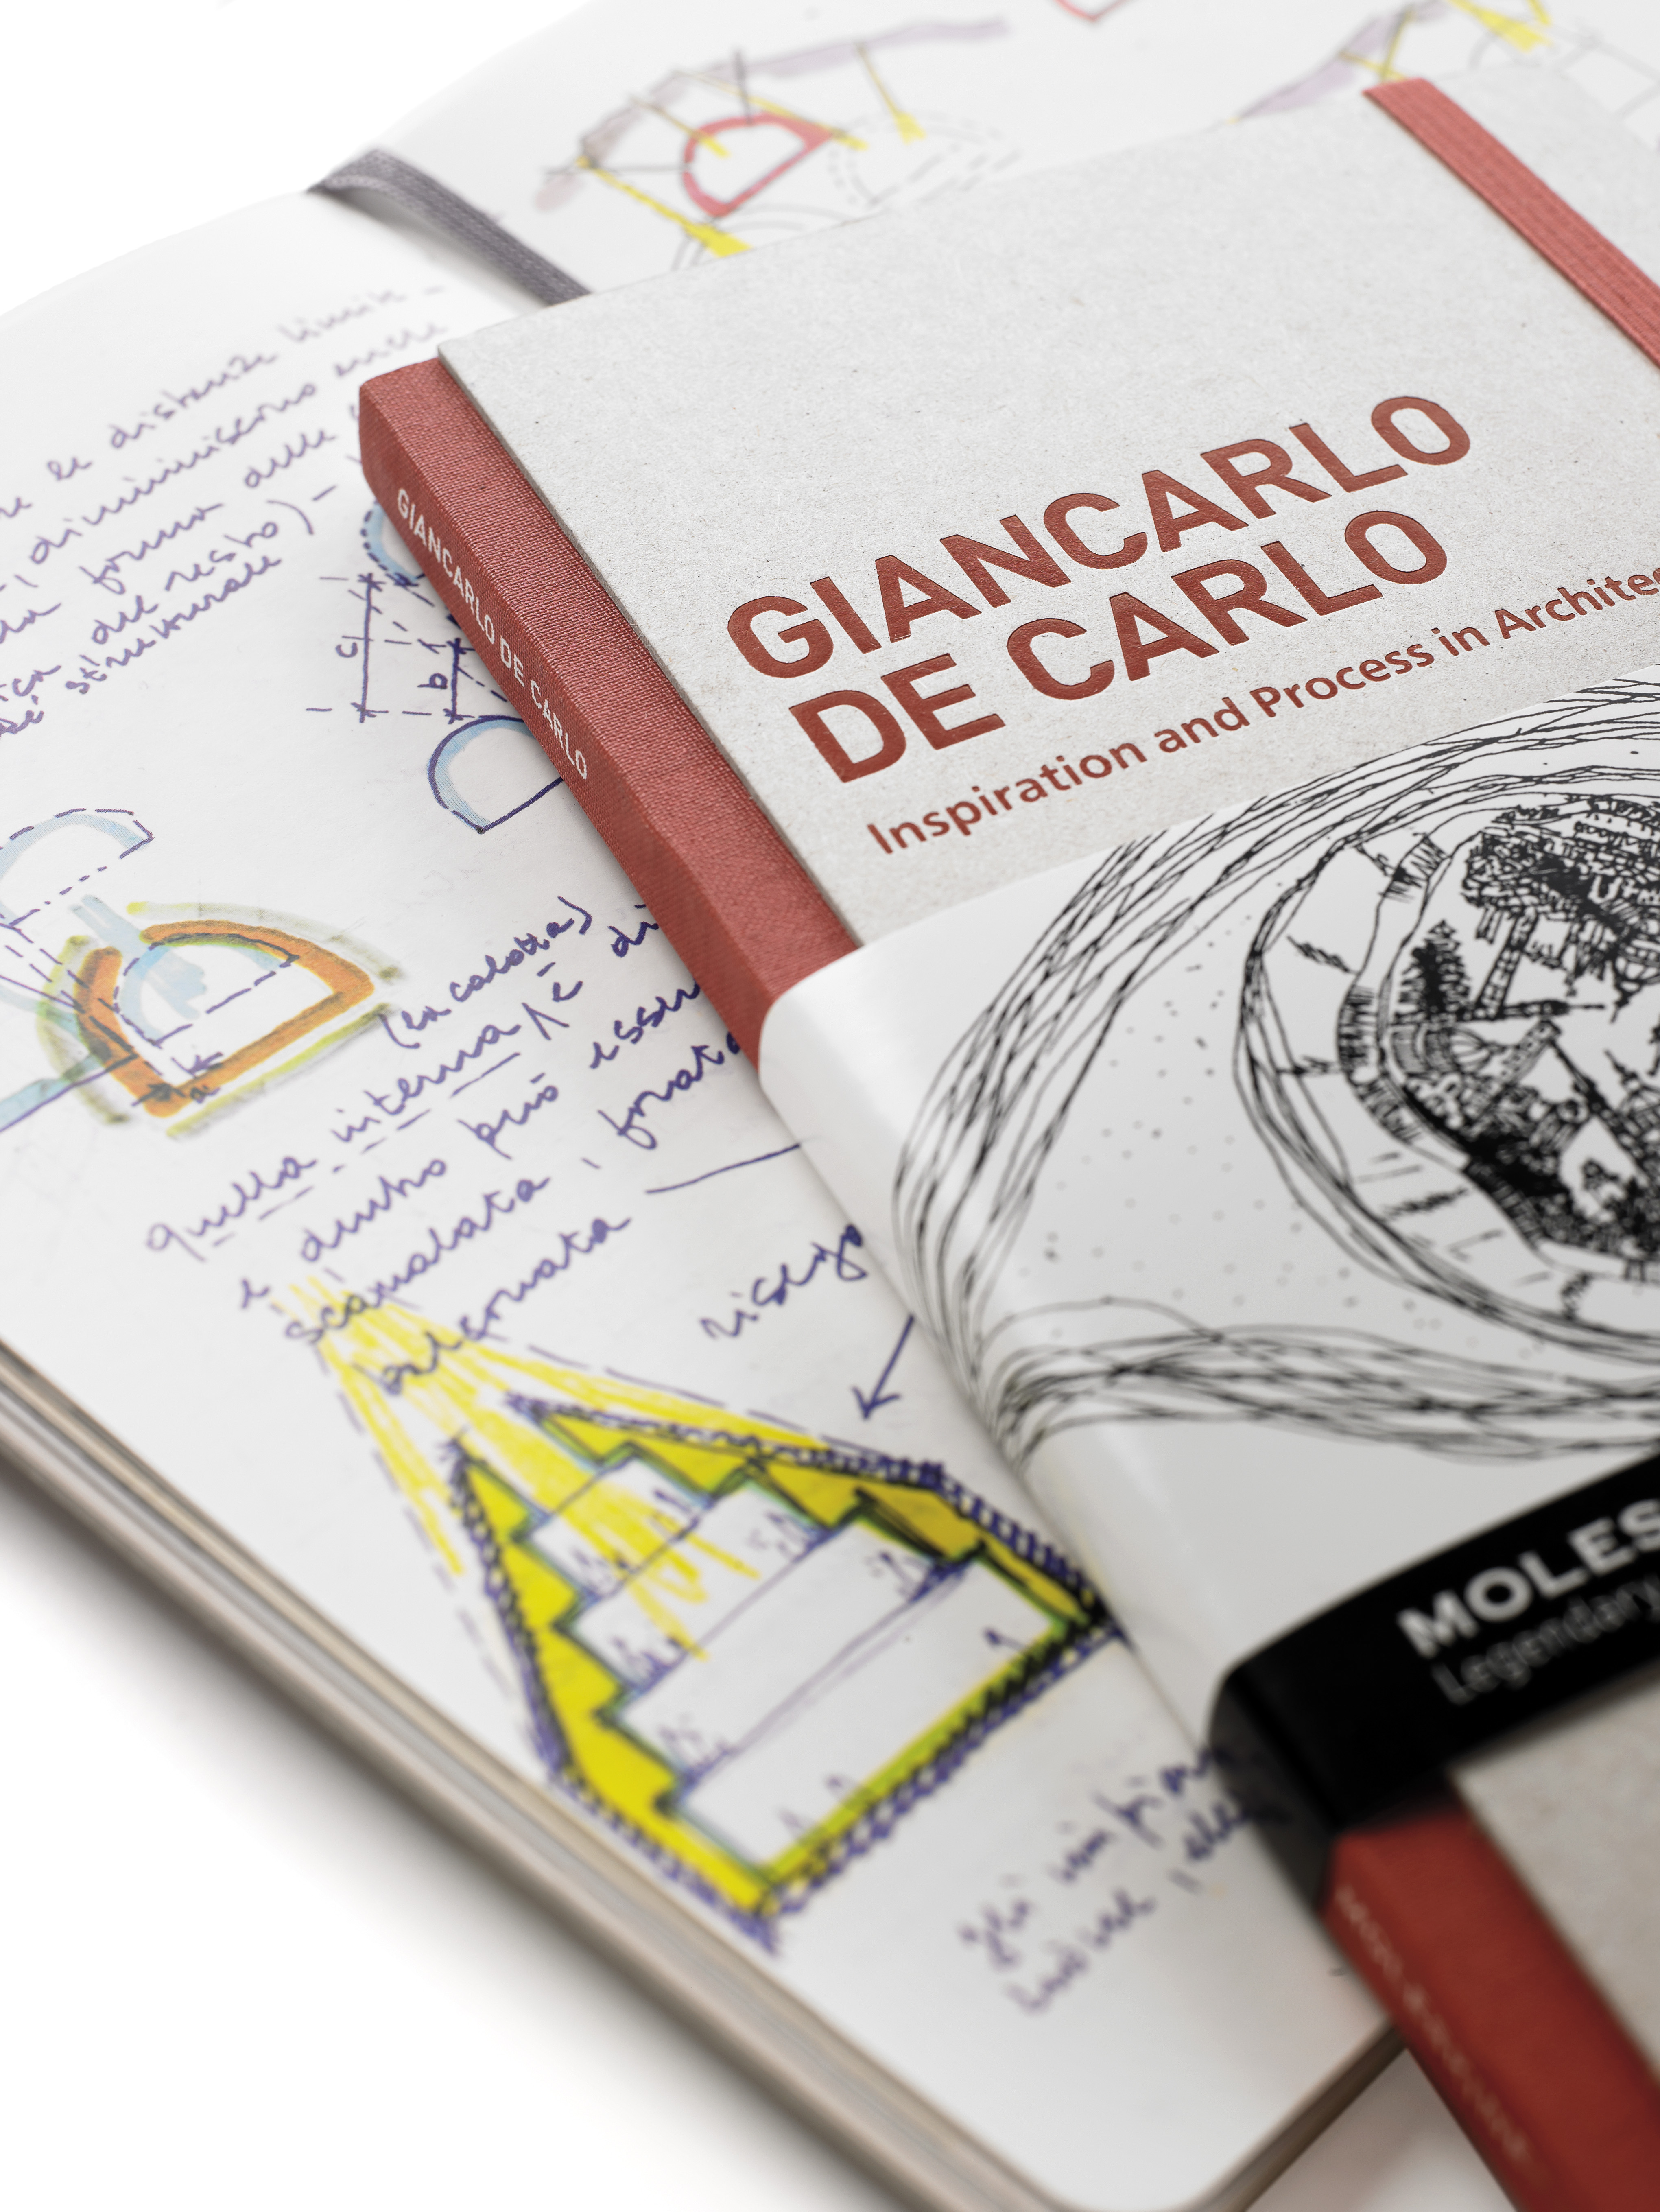 Inspiration and Process in Architecture - Moleskine